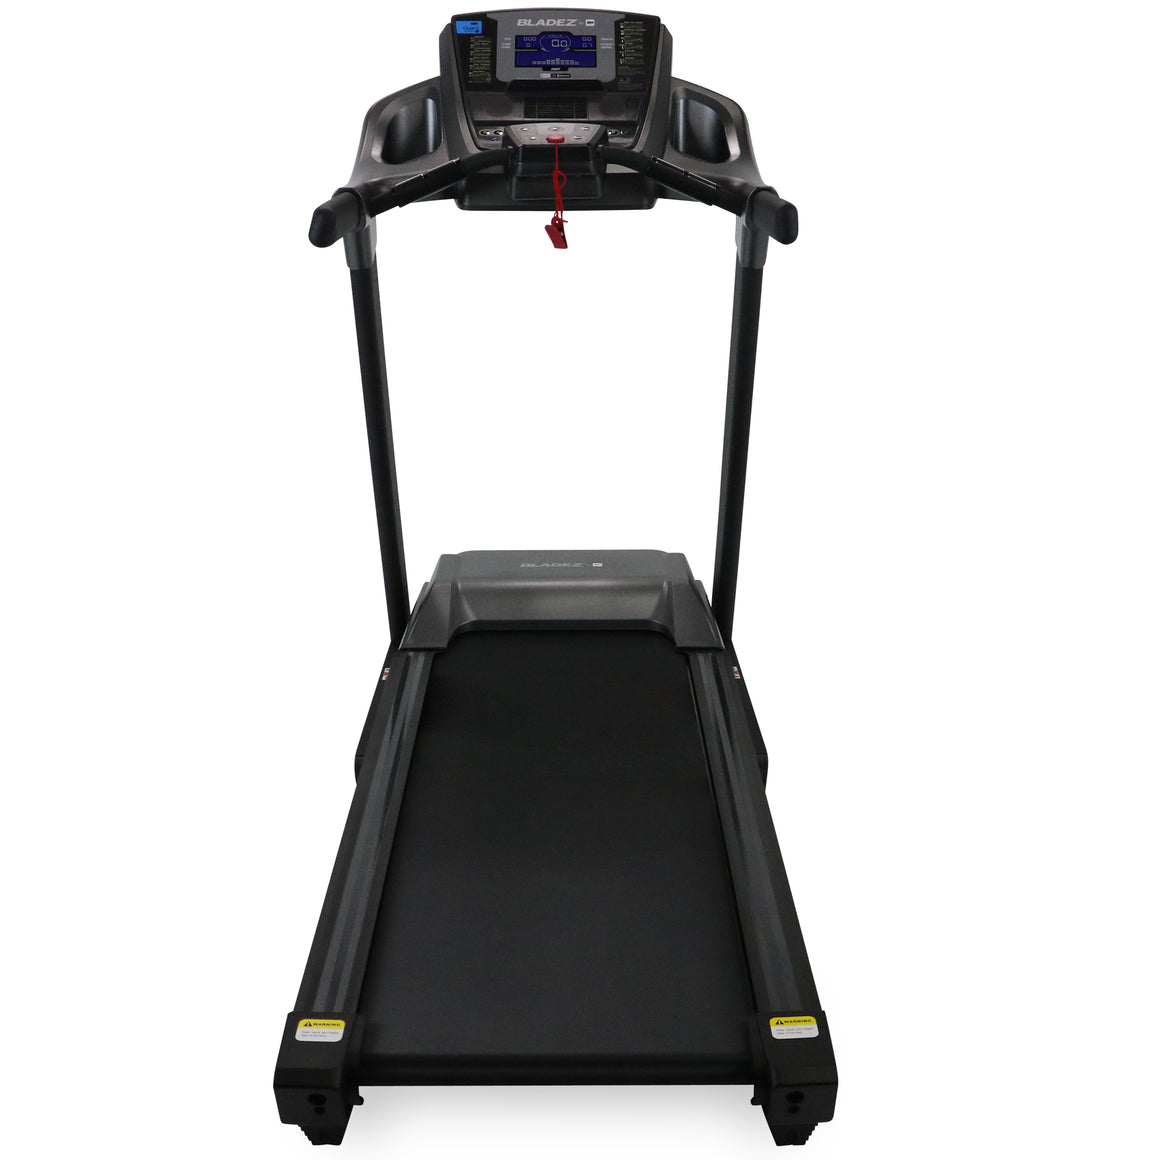 Bladez Fitness 200 T Treadmill - Indoor Cyclery